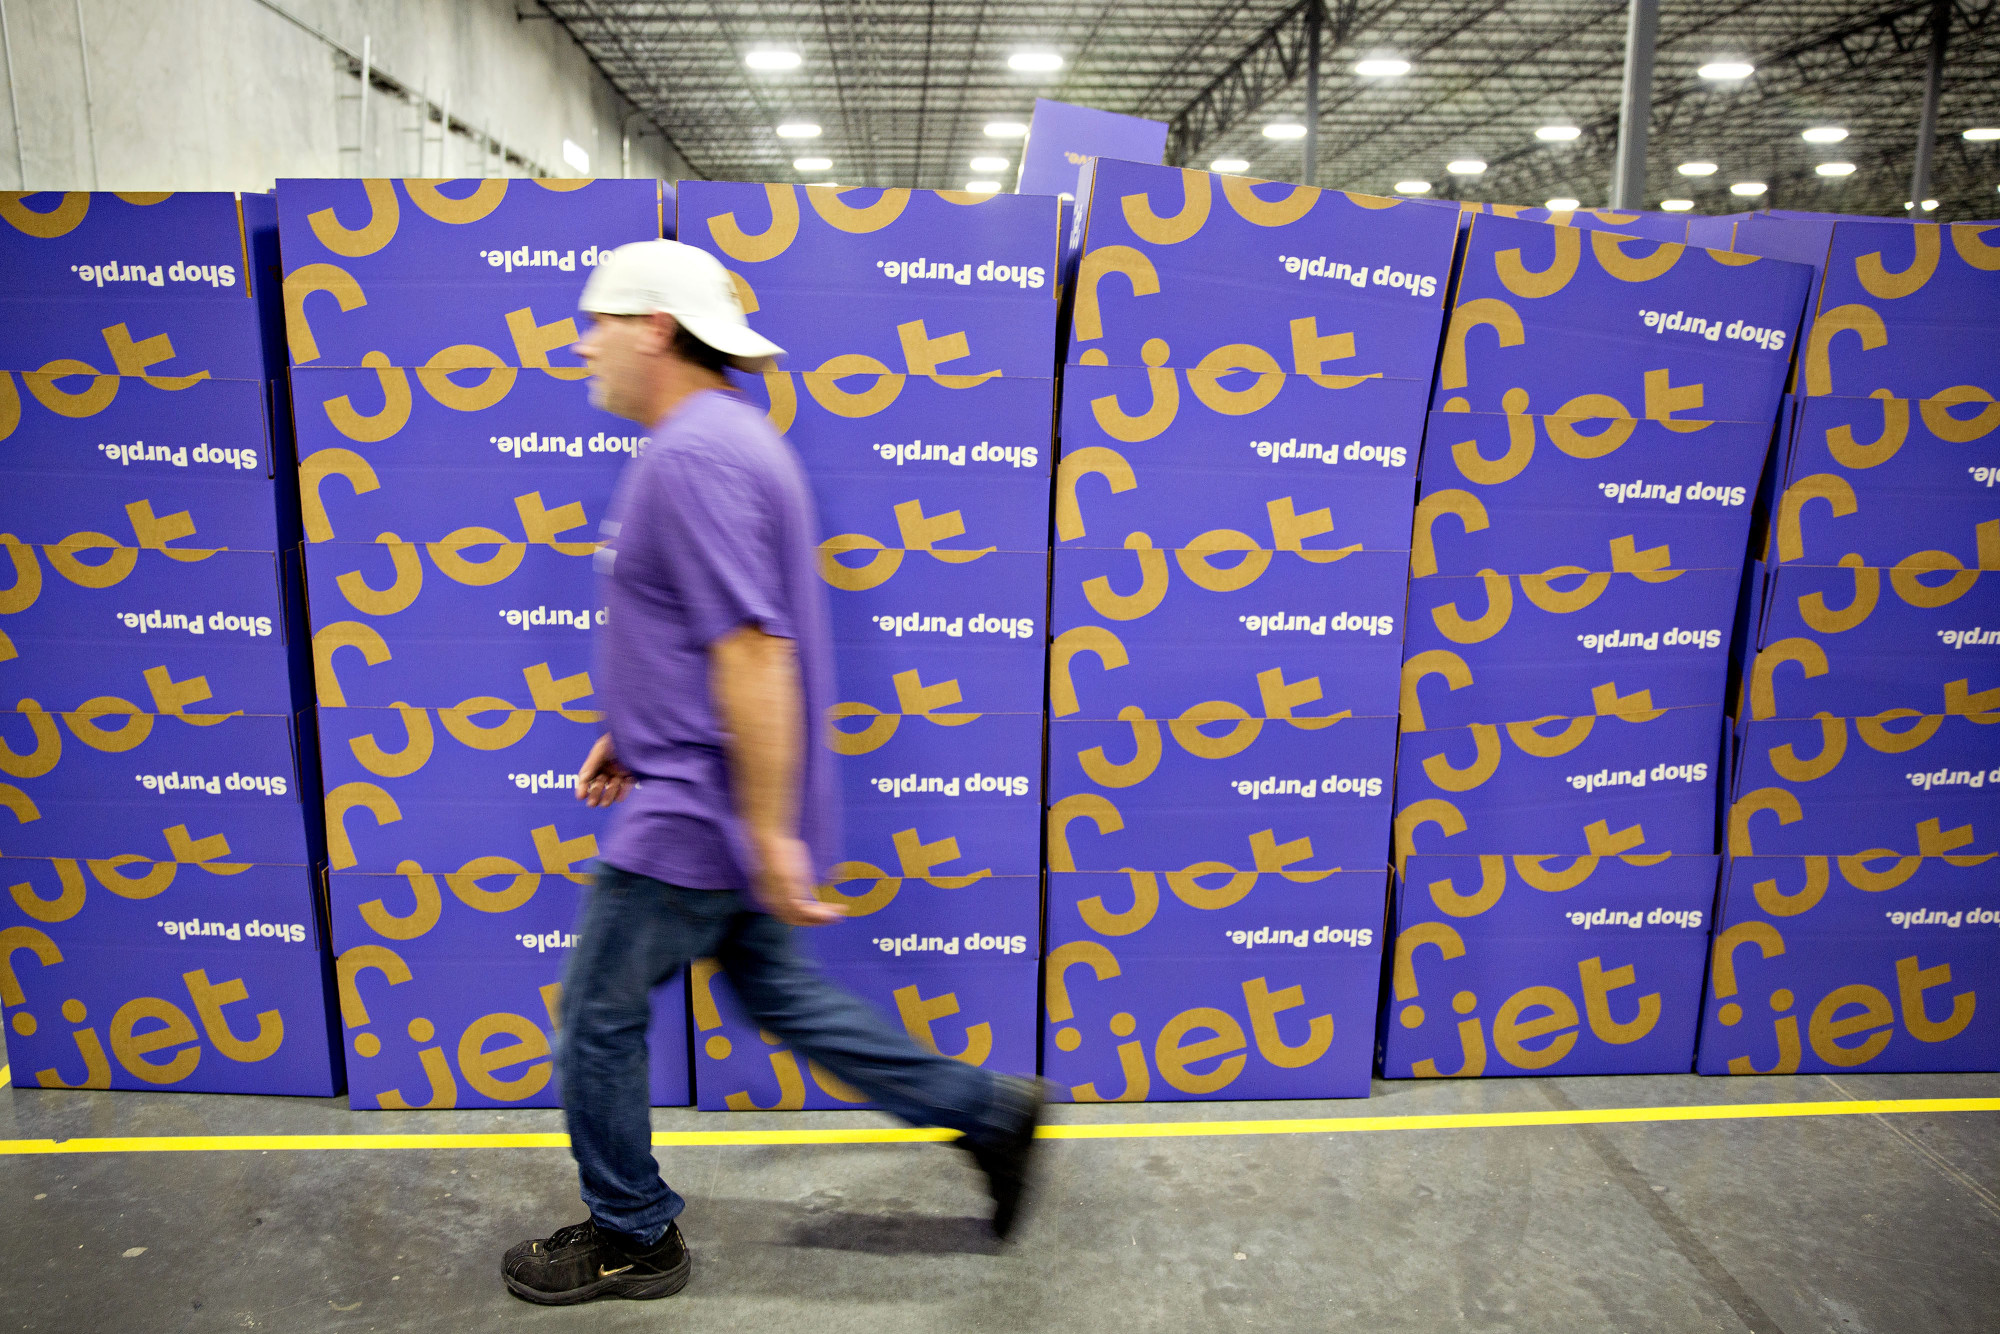 An employee walks past a stack of empty boxes at the Jet.com Inc. fulfillment center on Cyber Monday in Kansas City, Kansas, U.S.